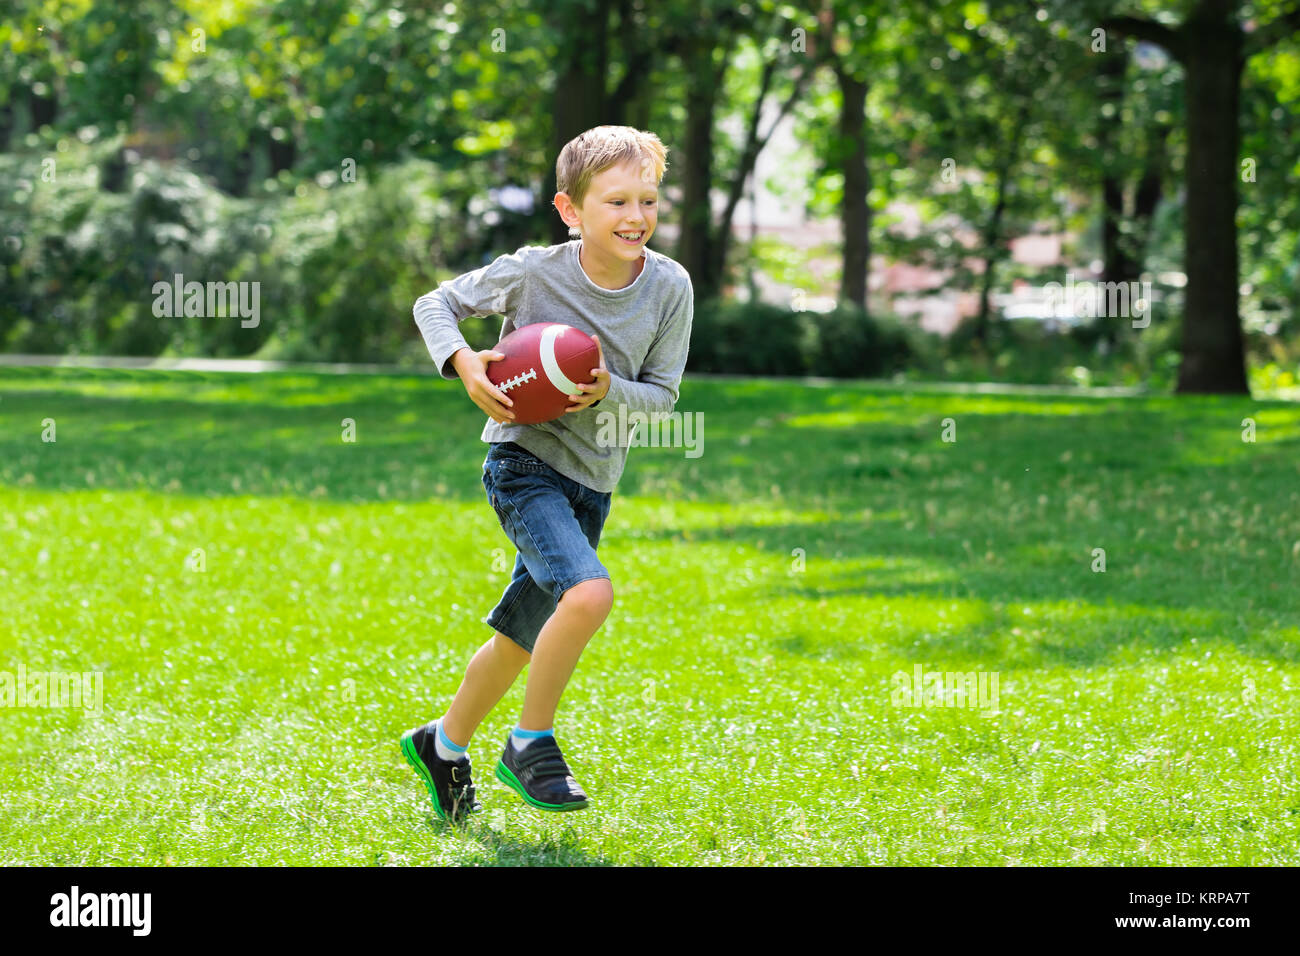 Boy Running With Rugby Ball - Stock Image